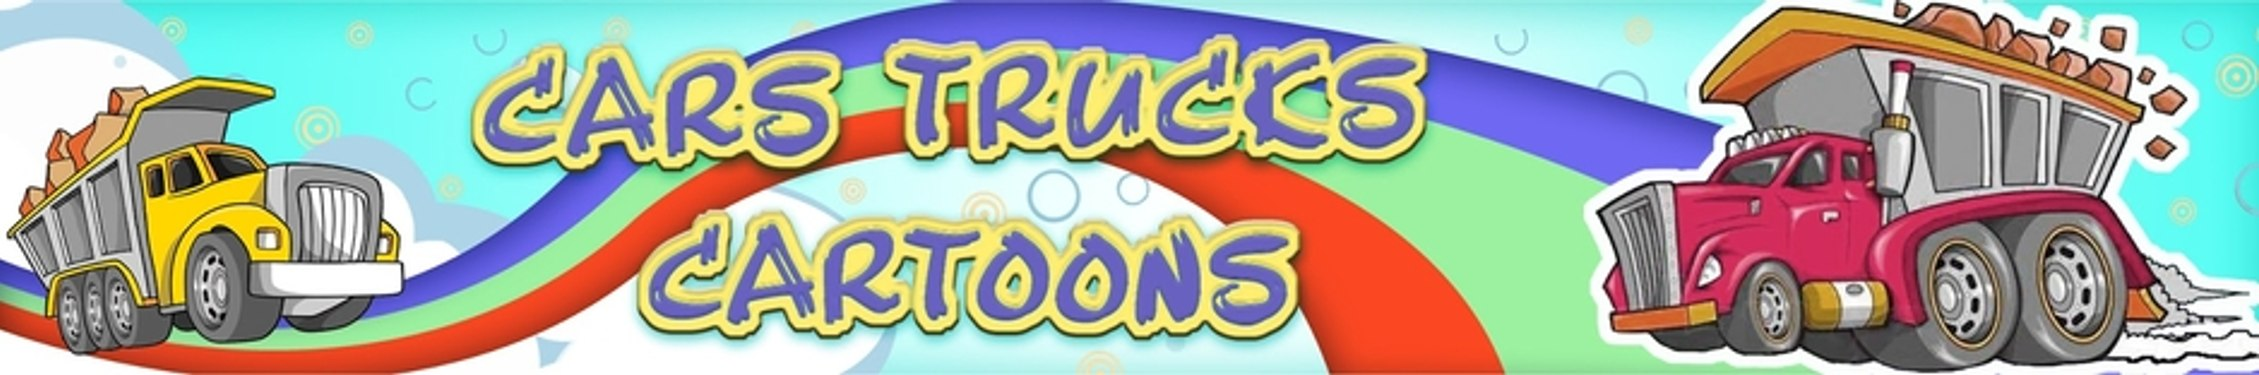 Cars Trucks Cartoons